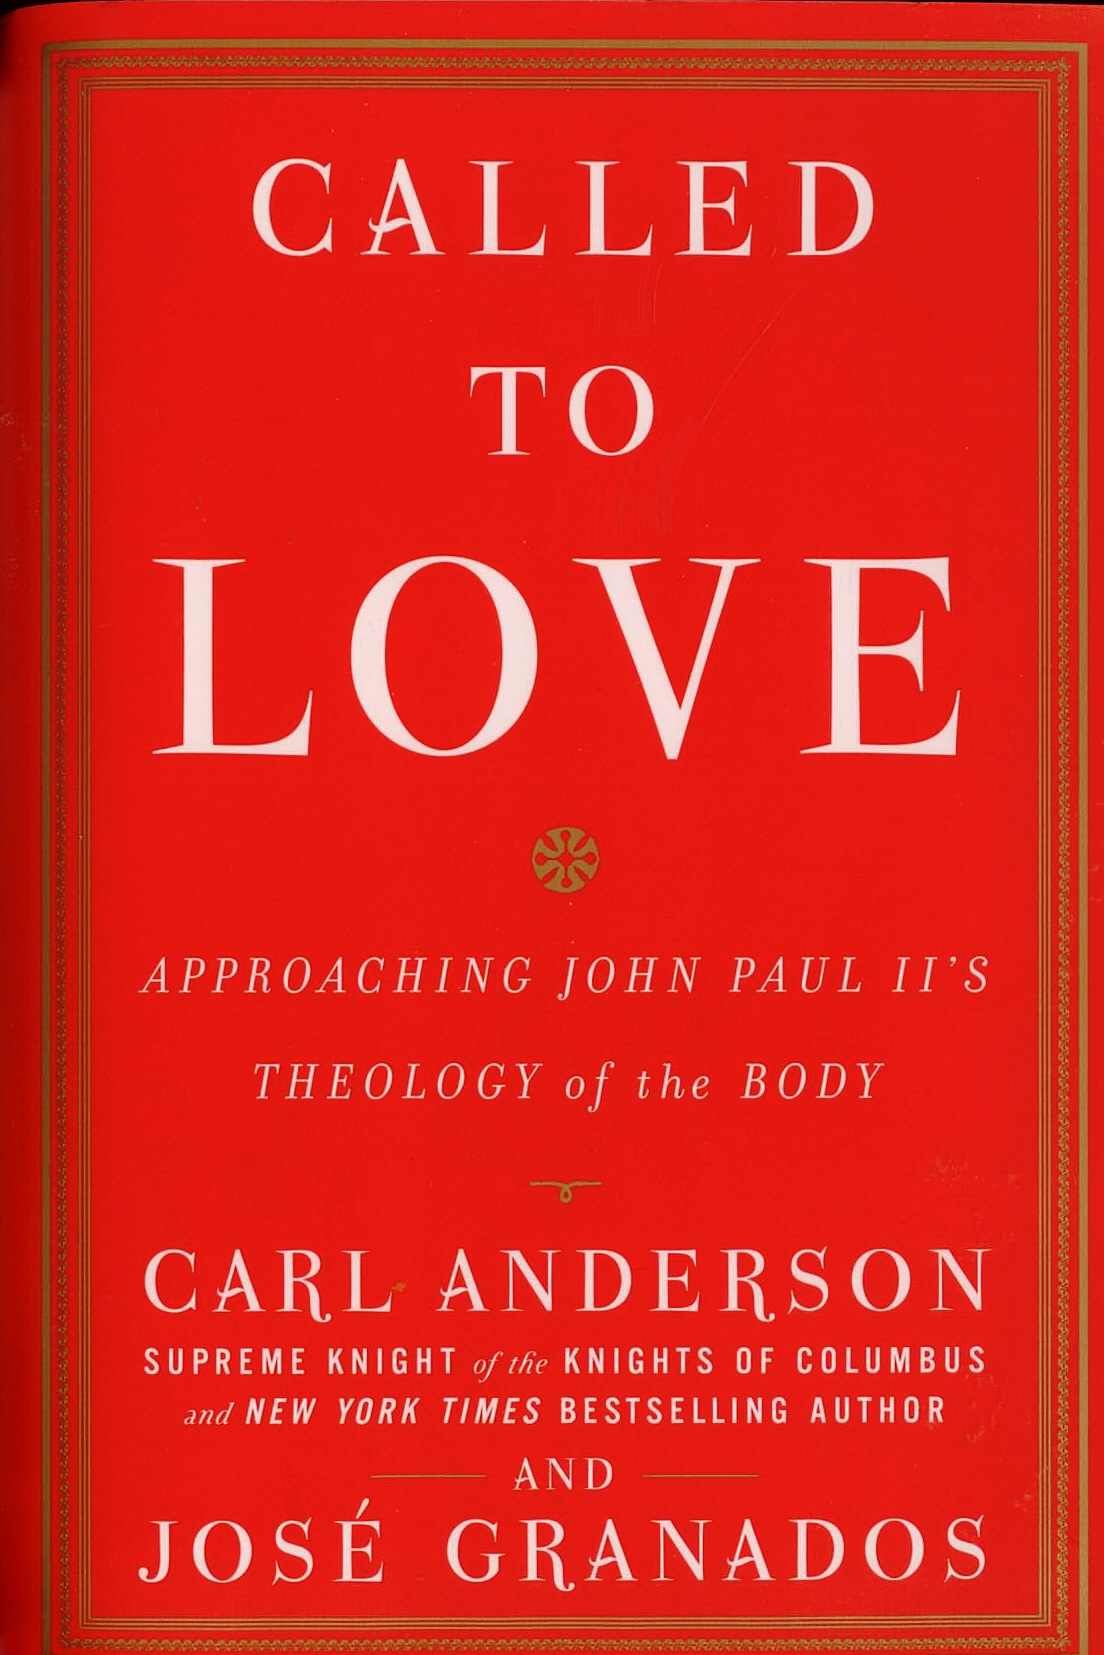 Called To Love by Carl Anderson & Jose Granados